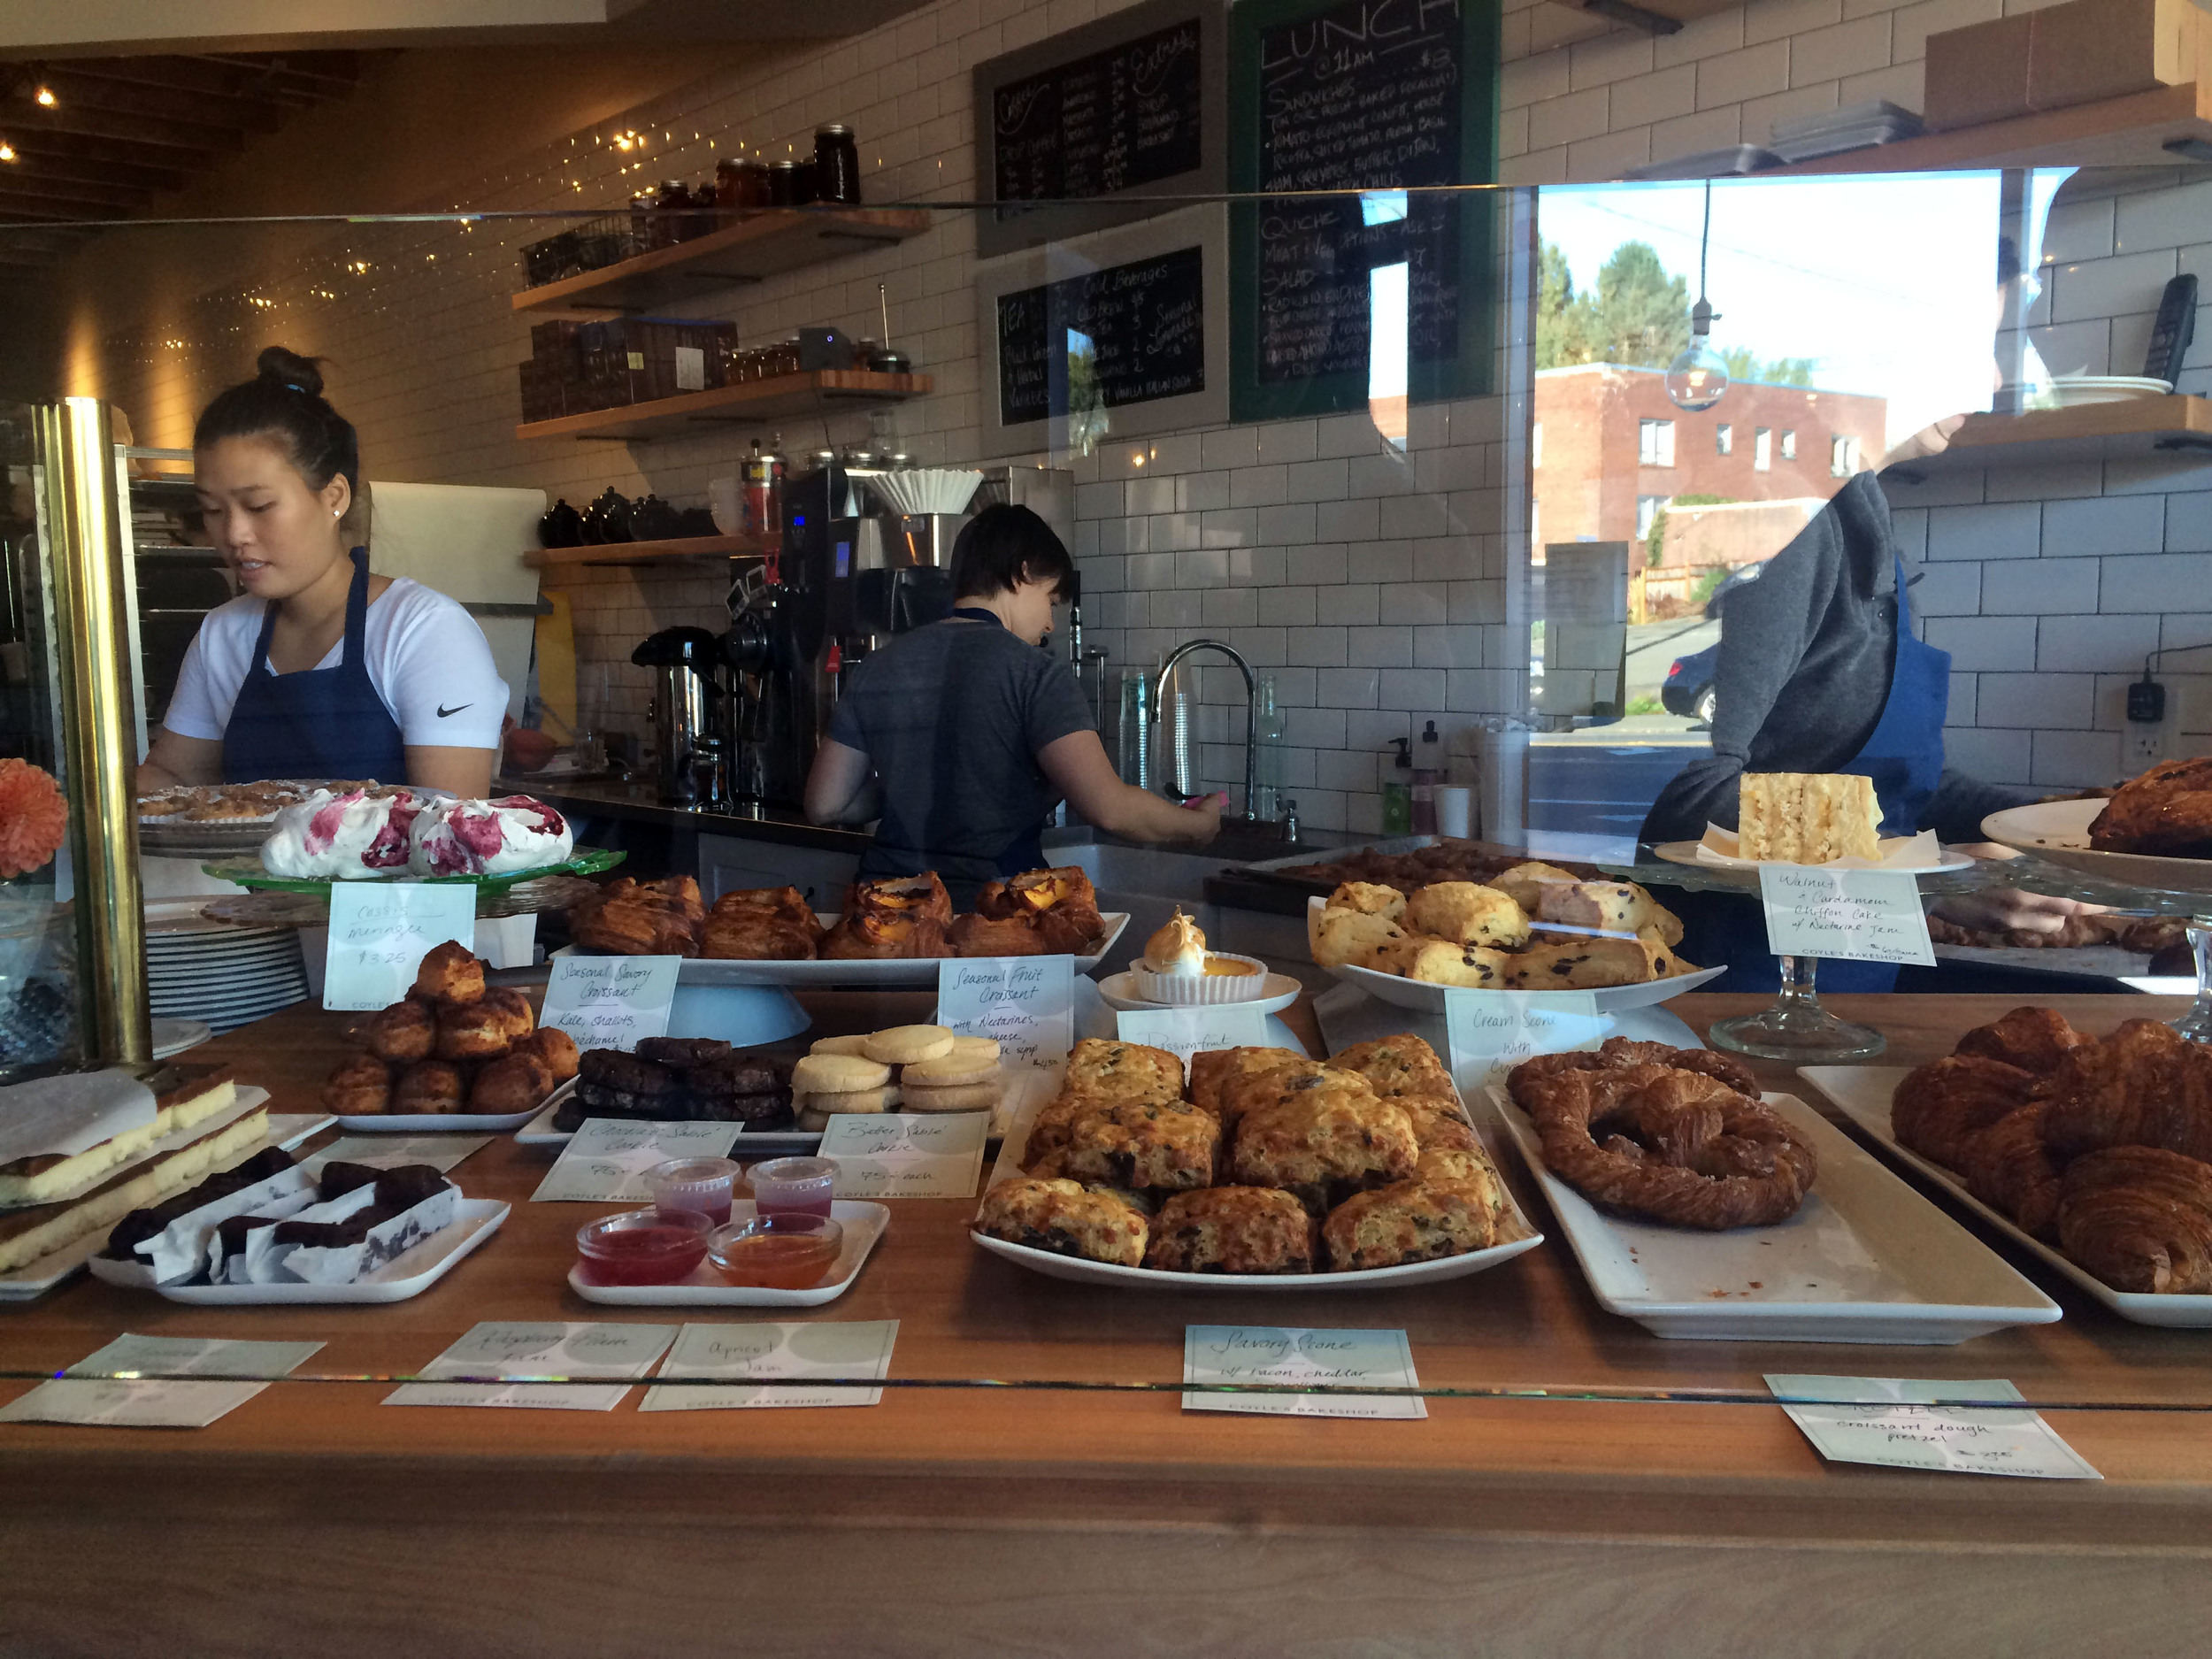 The display of baked goods